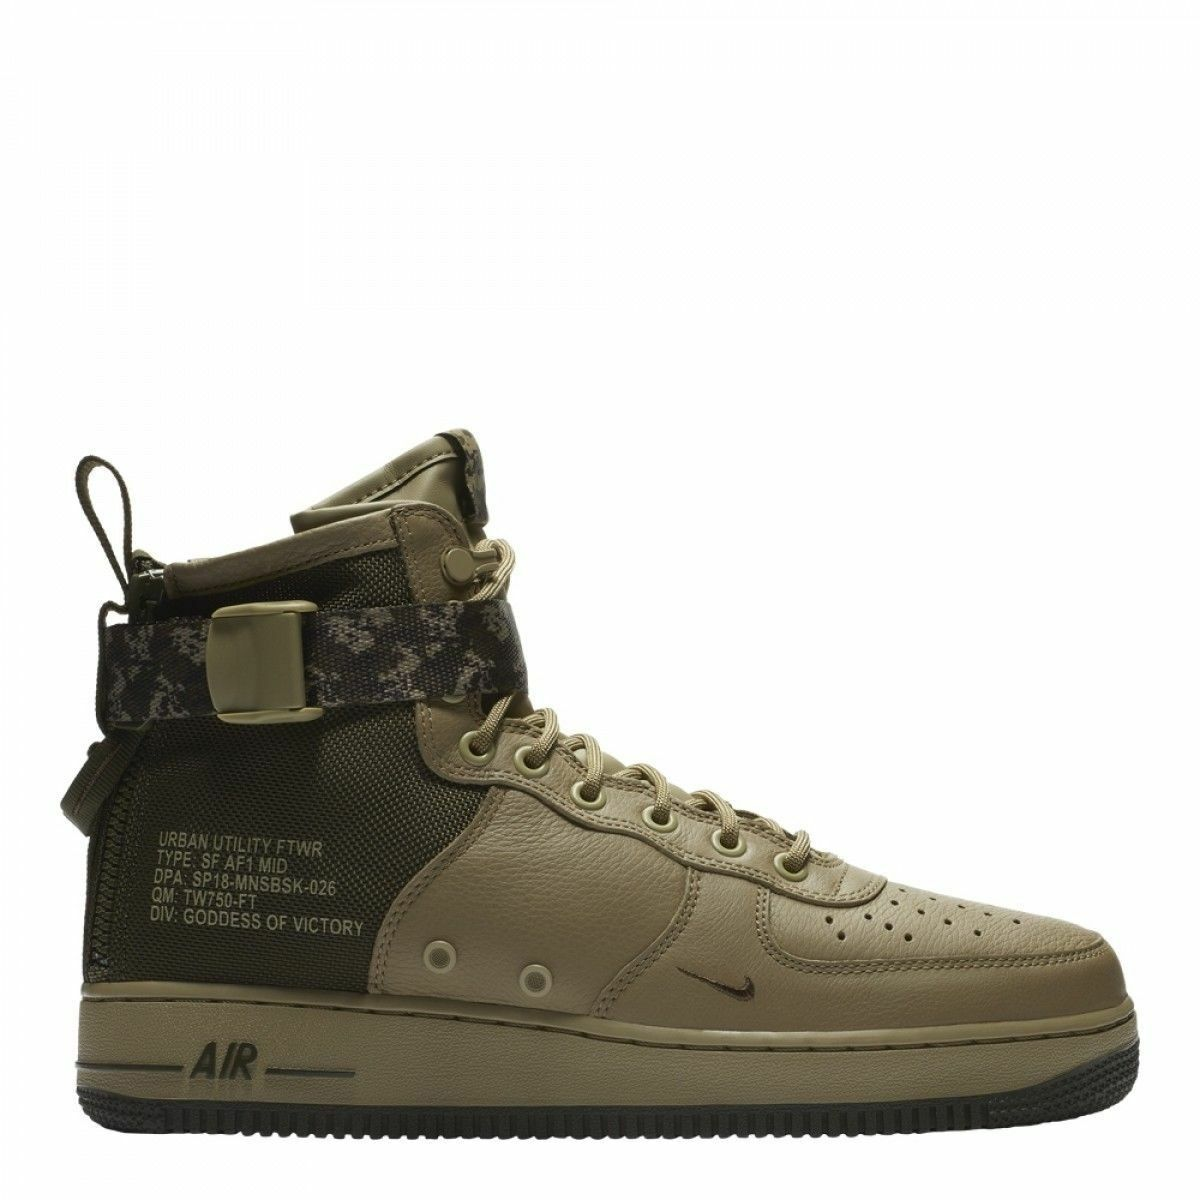 Nike SF AF1 Mid Men's Shoes Size 9.5 Style 917753-201